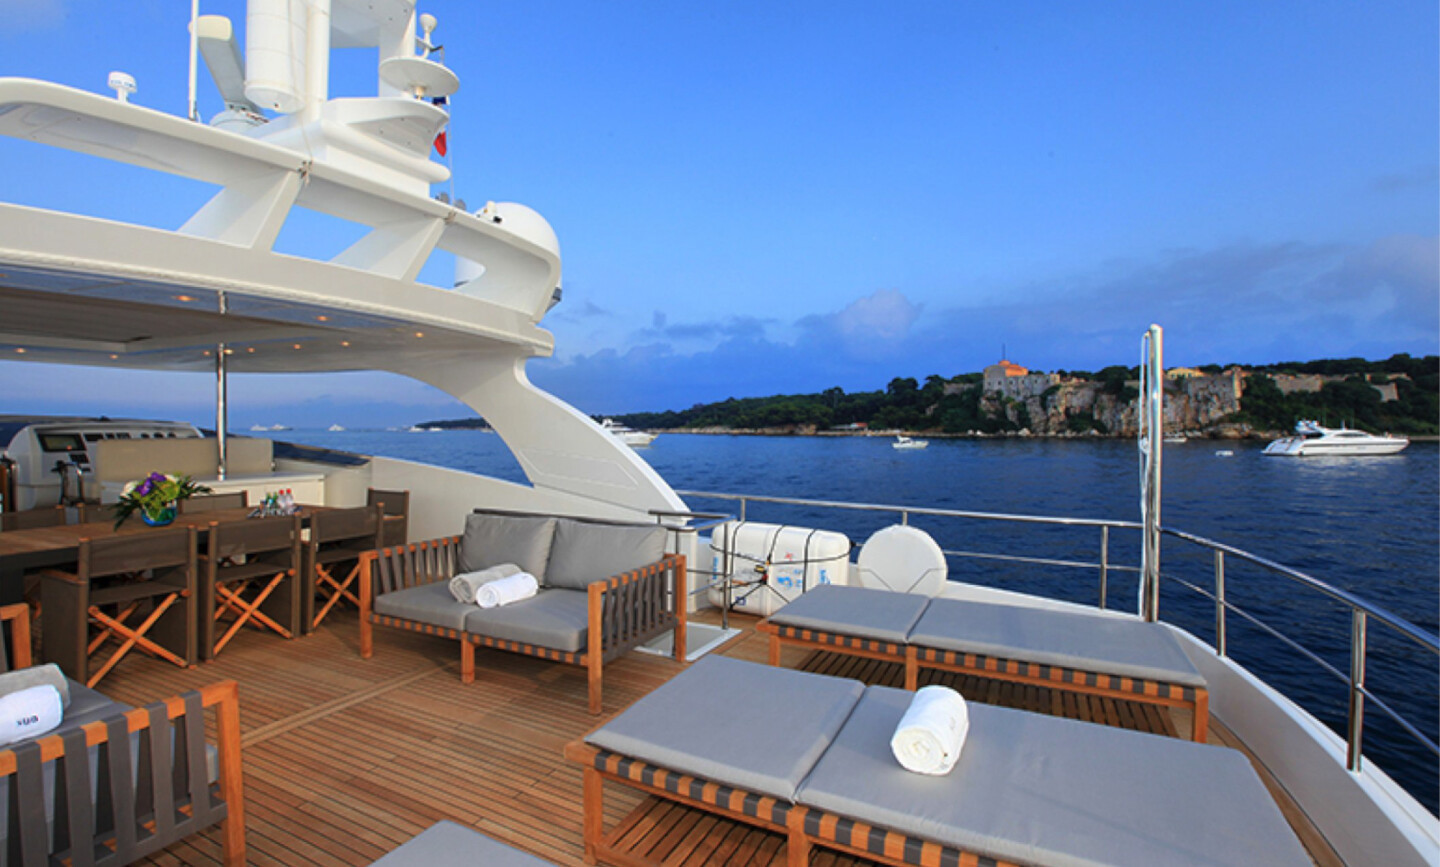 Sud yacht for Sale 5